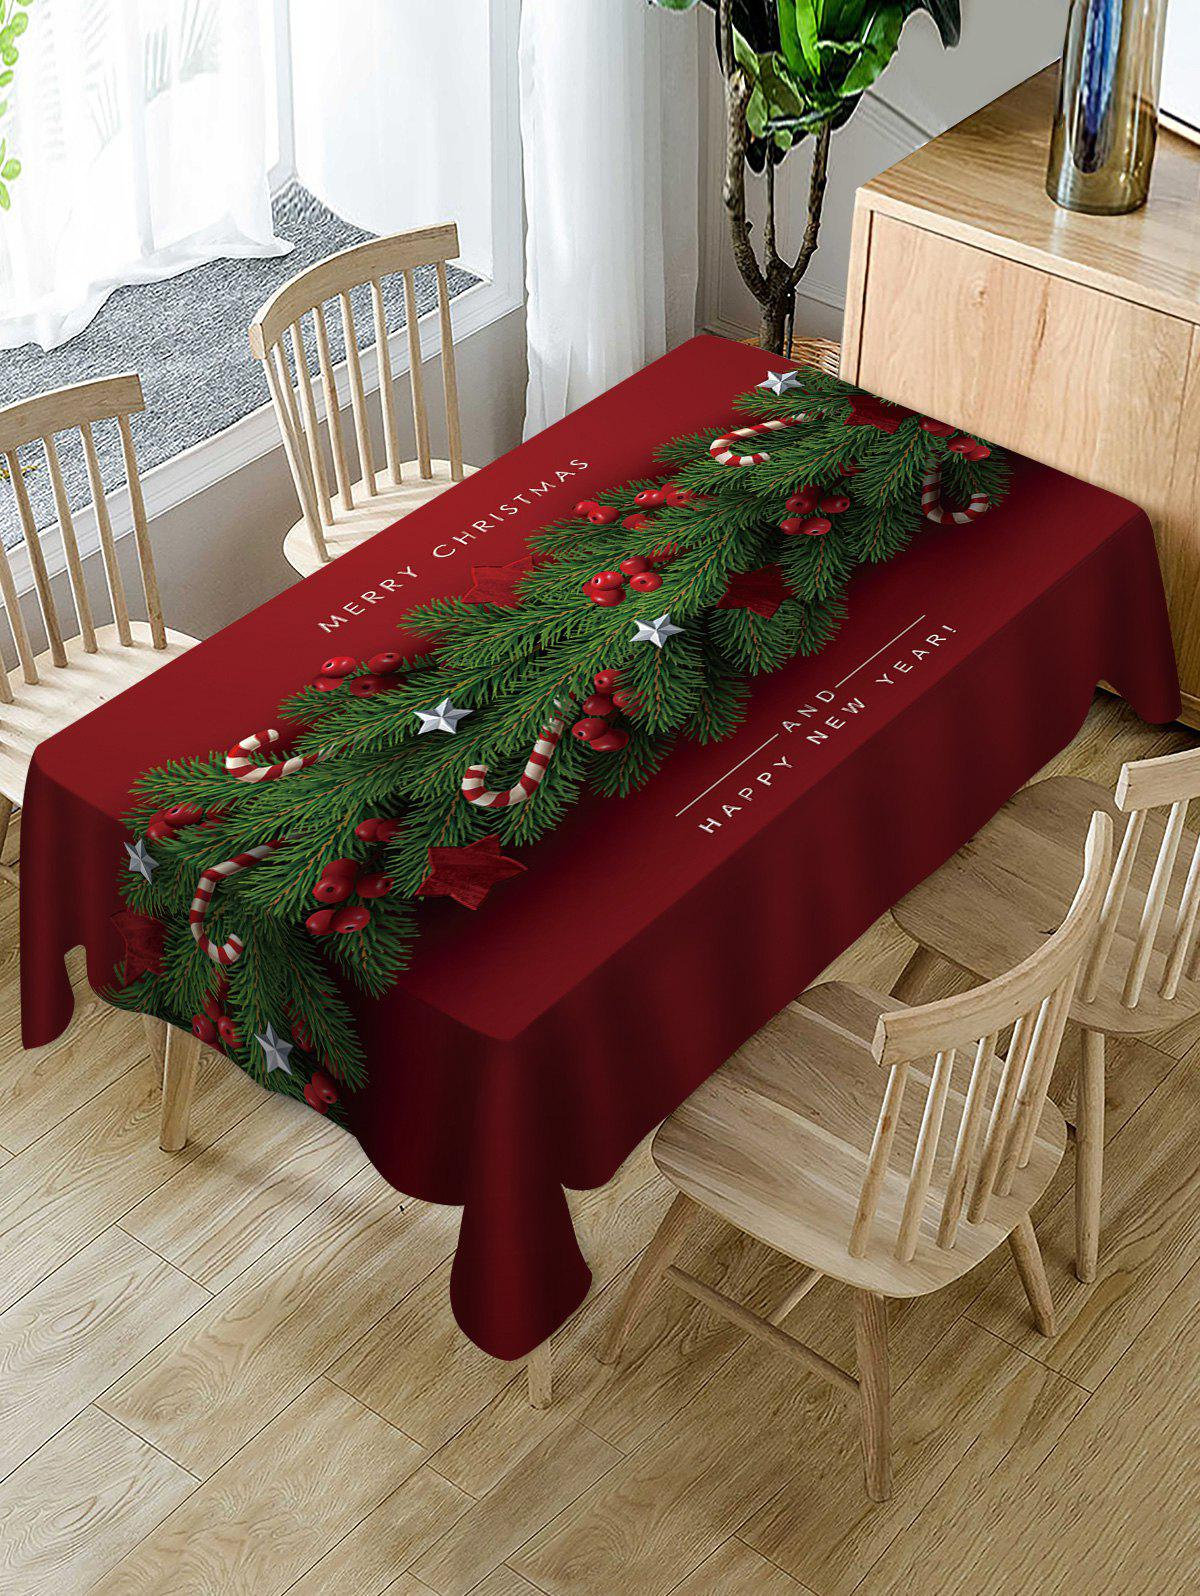 Unique Merry Christmas Candy Cane Fabric Waterproof Table Cloth